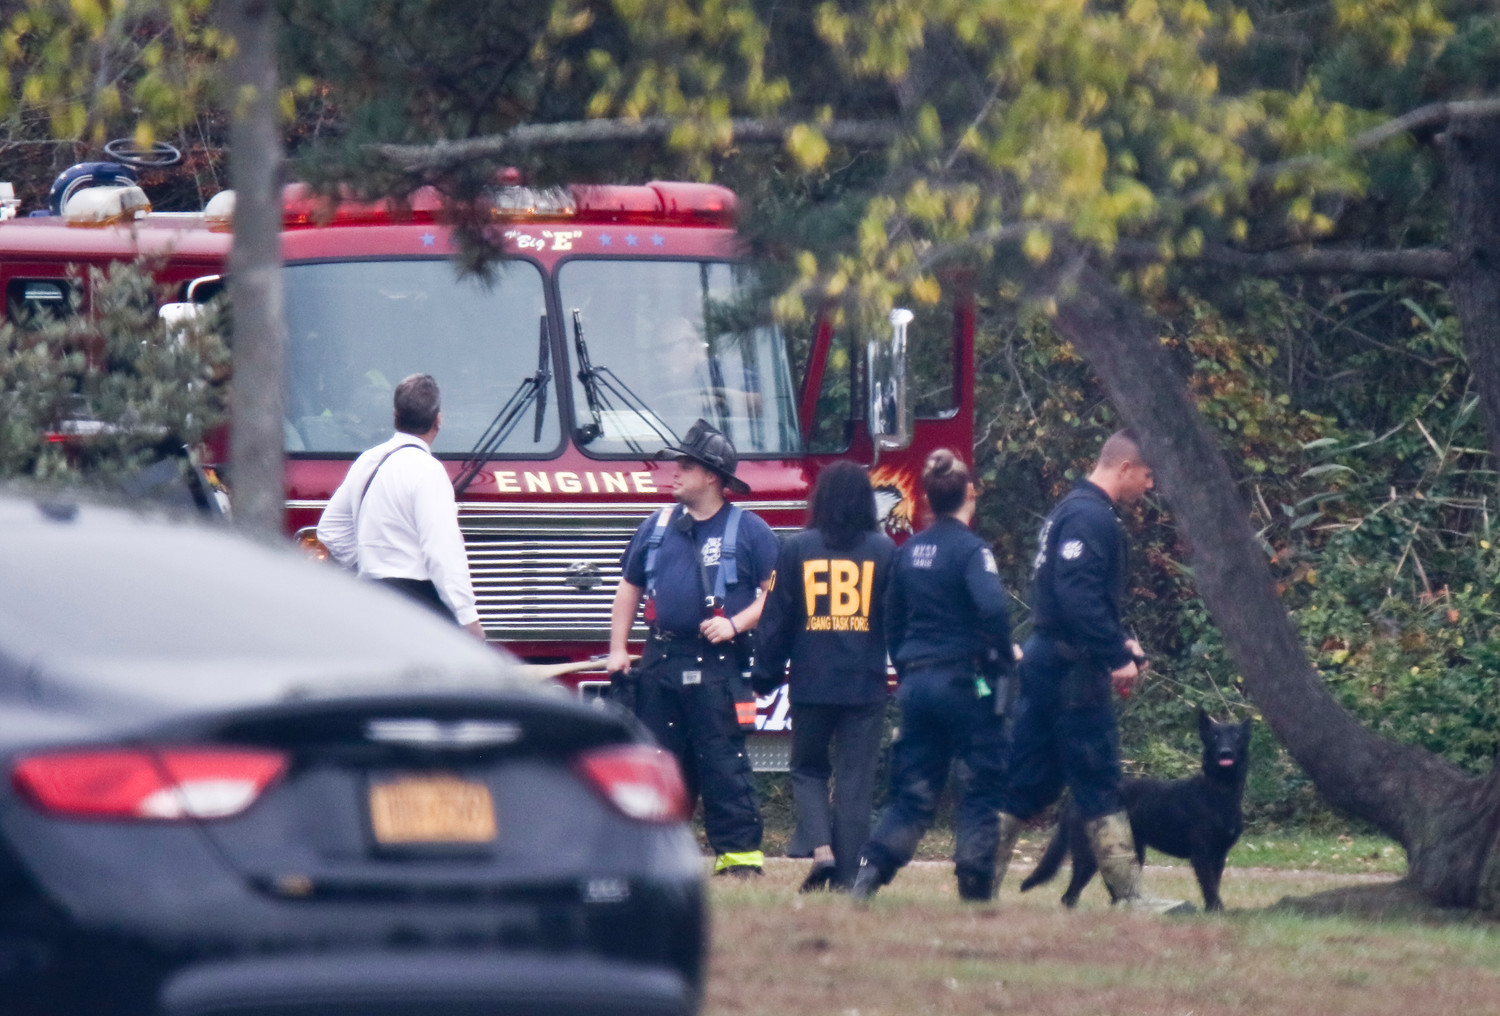 Nassau County police shut down Cow Meadow Park early on Wednesday as they searched for remains. The FBI Gang Task Force, Nassau County police K-9 units and State Troopers searched the woods in the park.